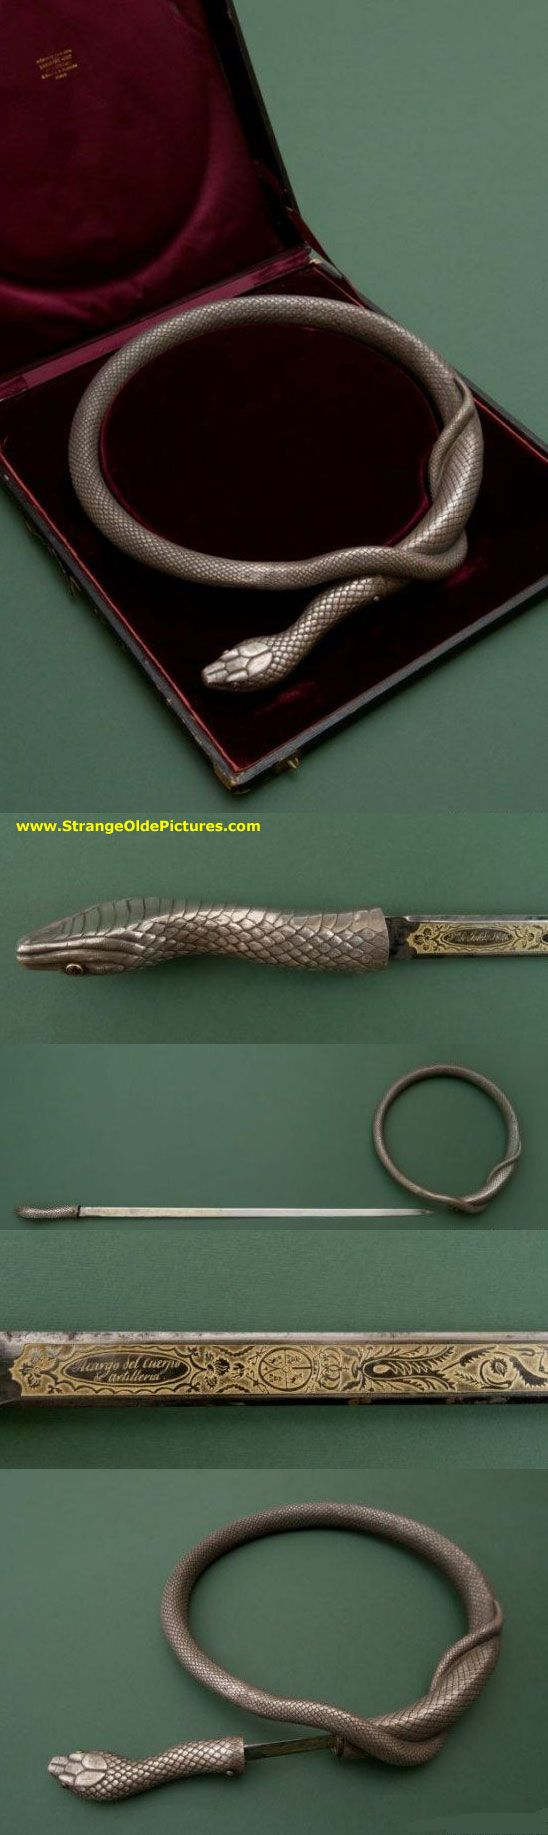 SECRET SWORD HIDDEN IN 'SNAKE' NECKLACE. The Silver handle is made in the form of the forward section of the body and head of a poisonous snake with the eye inserts created from pink glass. In the lower part of the handle is the lock spring, which fixes the blade in the scabbard. Silver scabbards are prepared in the form of the snake.